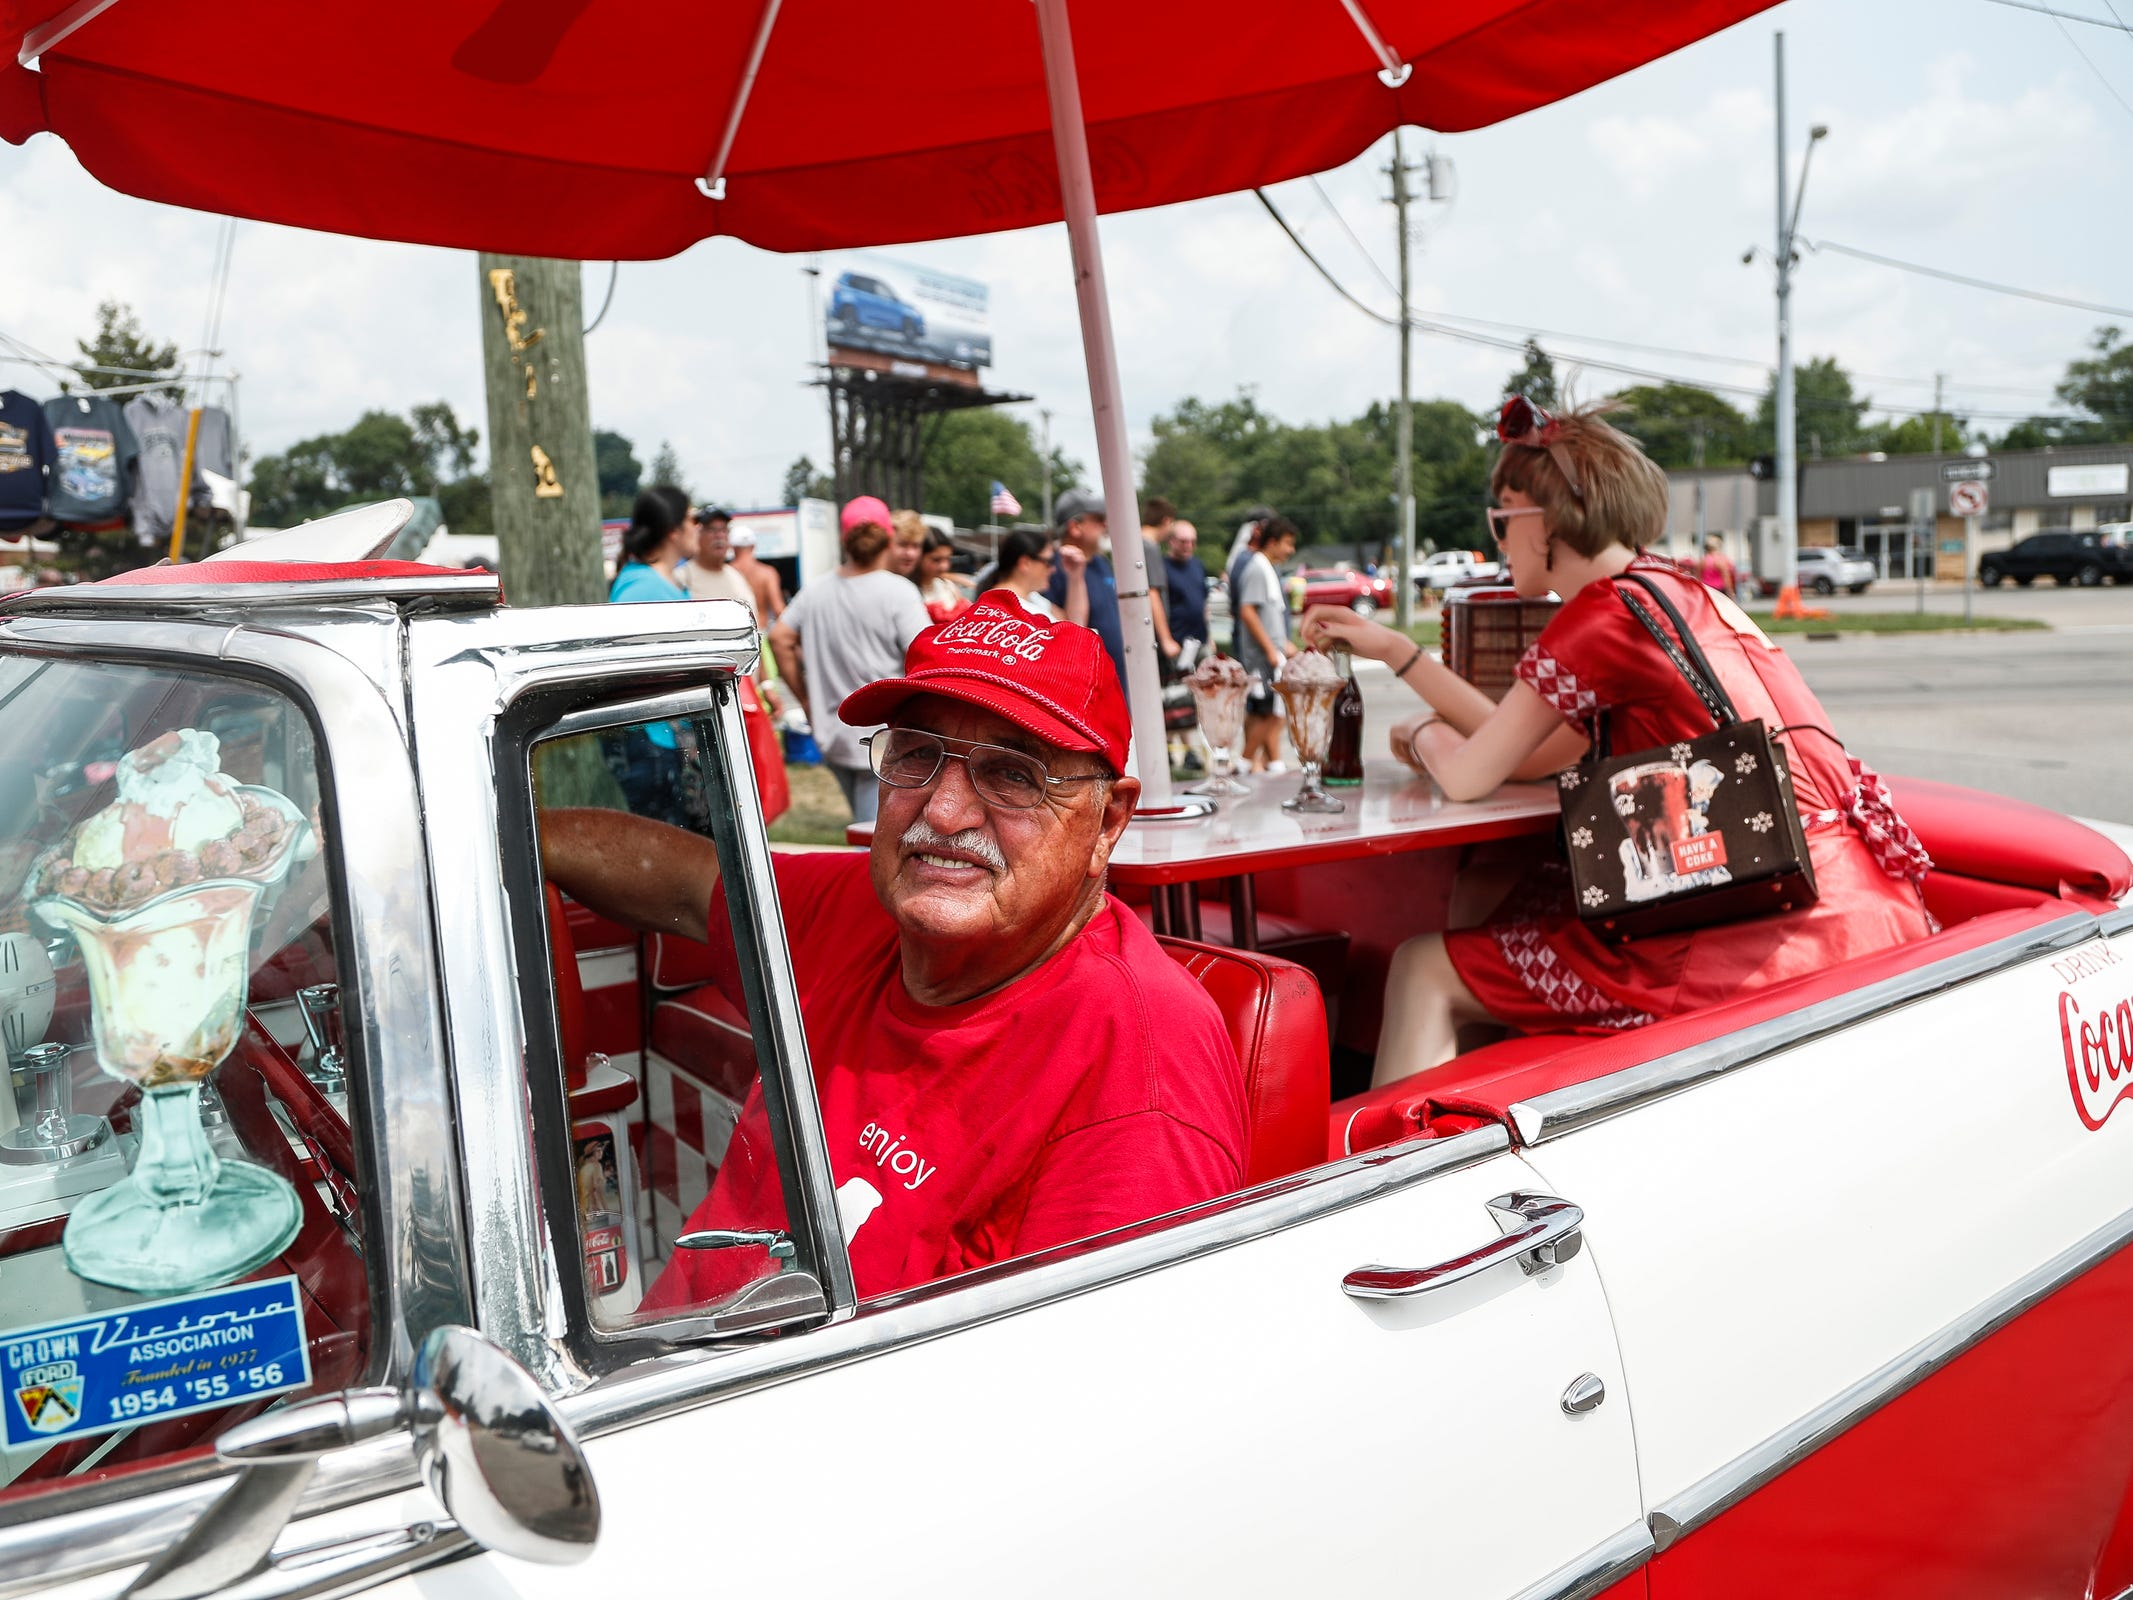 Bob Haas of South Lyon in his Coca-Cola themed 1955 Ford along Woodward Avenue in Royal Oak during Woodward Dream Cruise, Saturday, August 18, 2018.